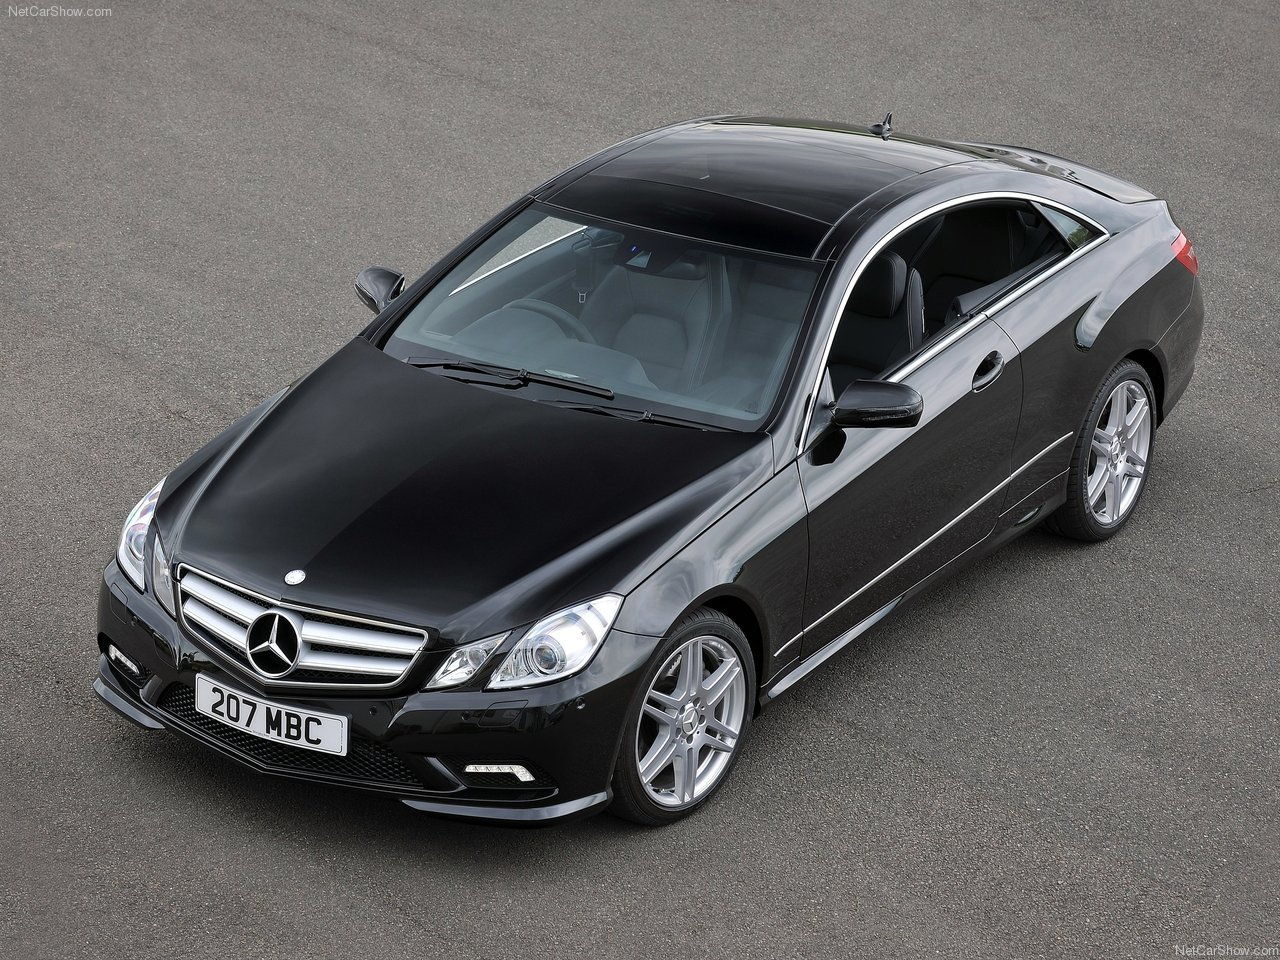 2010 mercedes benz e class coupe uk version mercedes. Black Bedroom Furniture Sets. Home Design Ideas